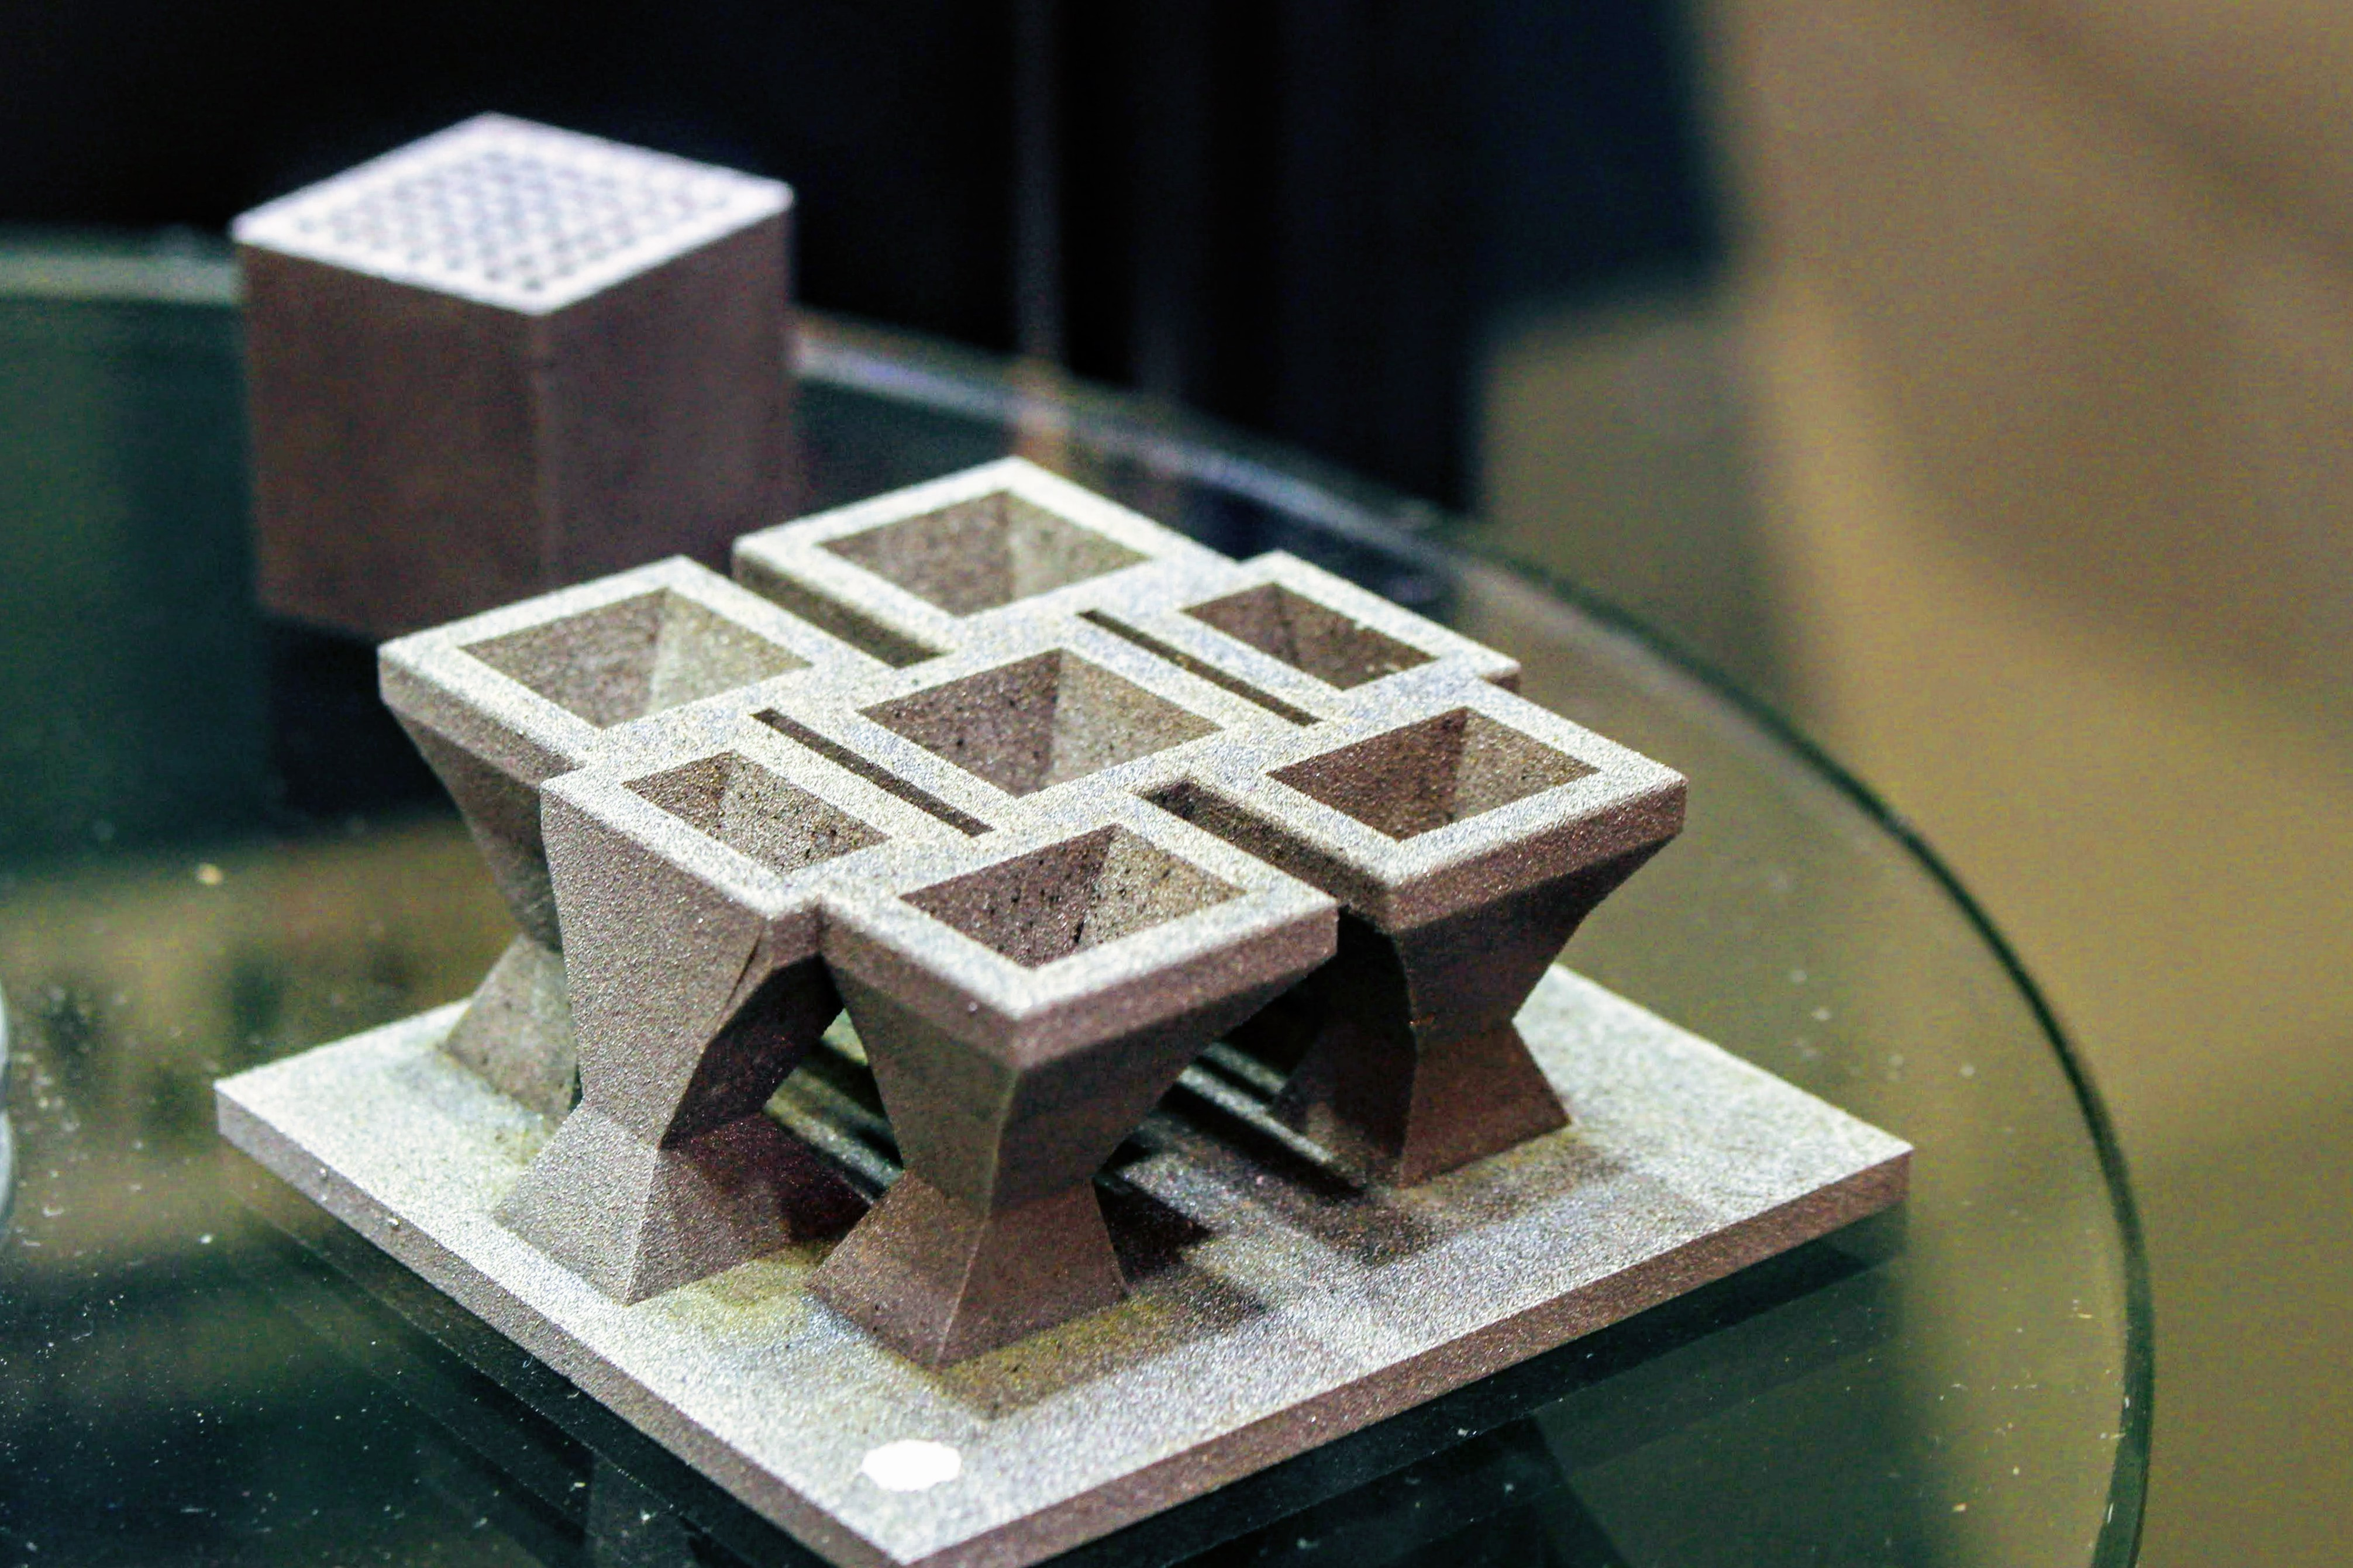 100 3D printing experts predict the future of 3D printing in 2030 - 3D Printing Industry